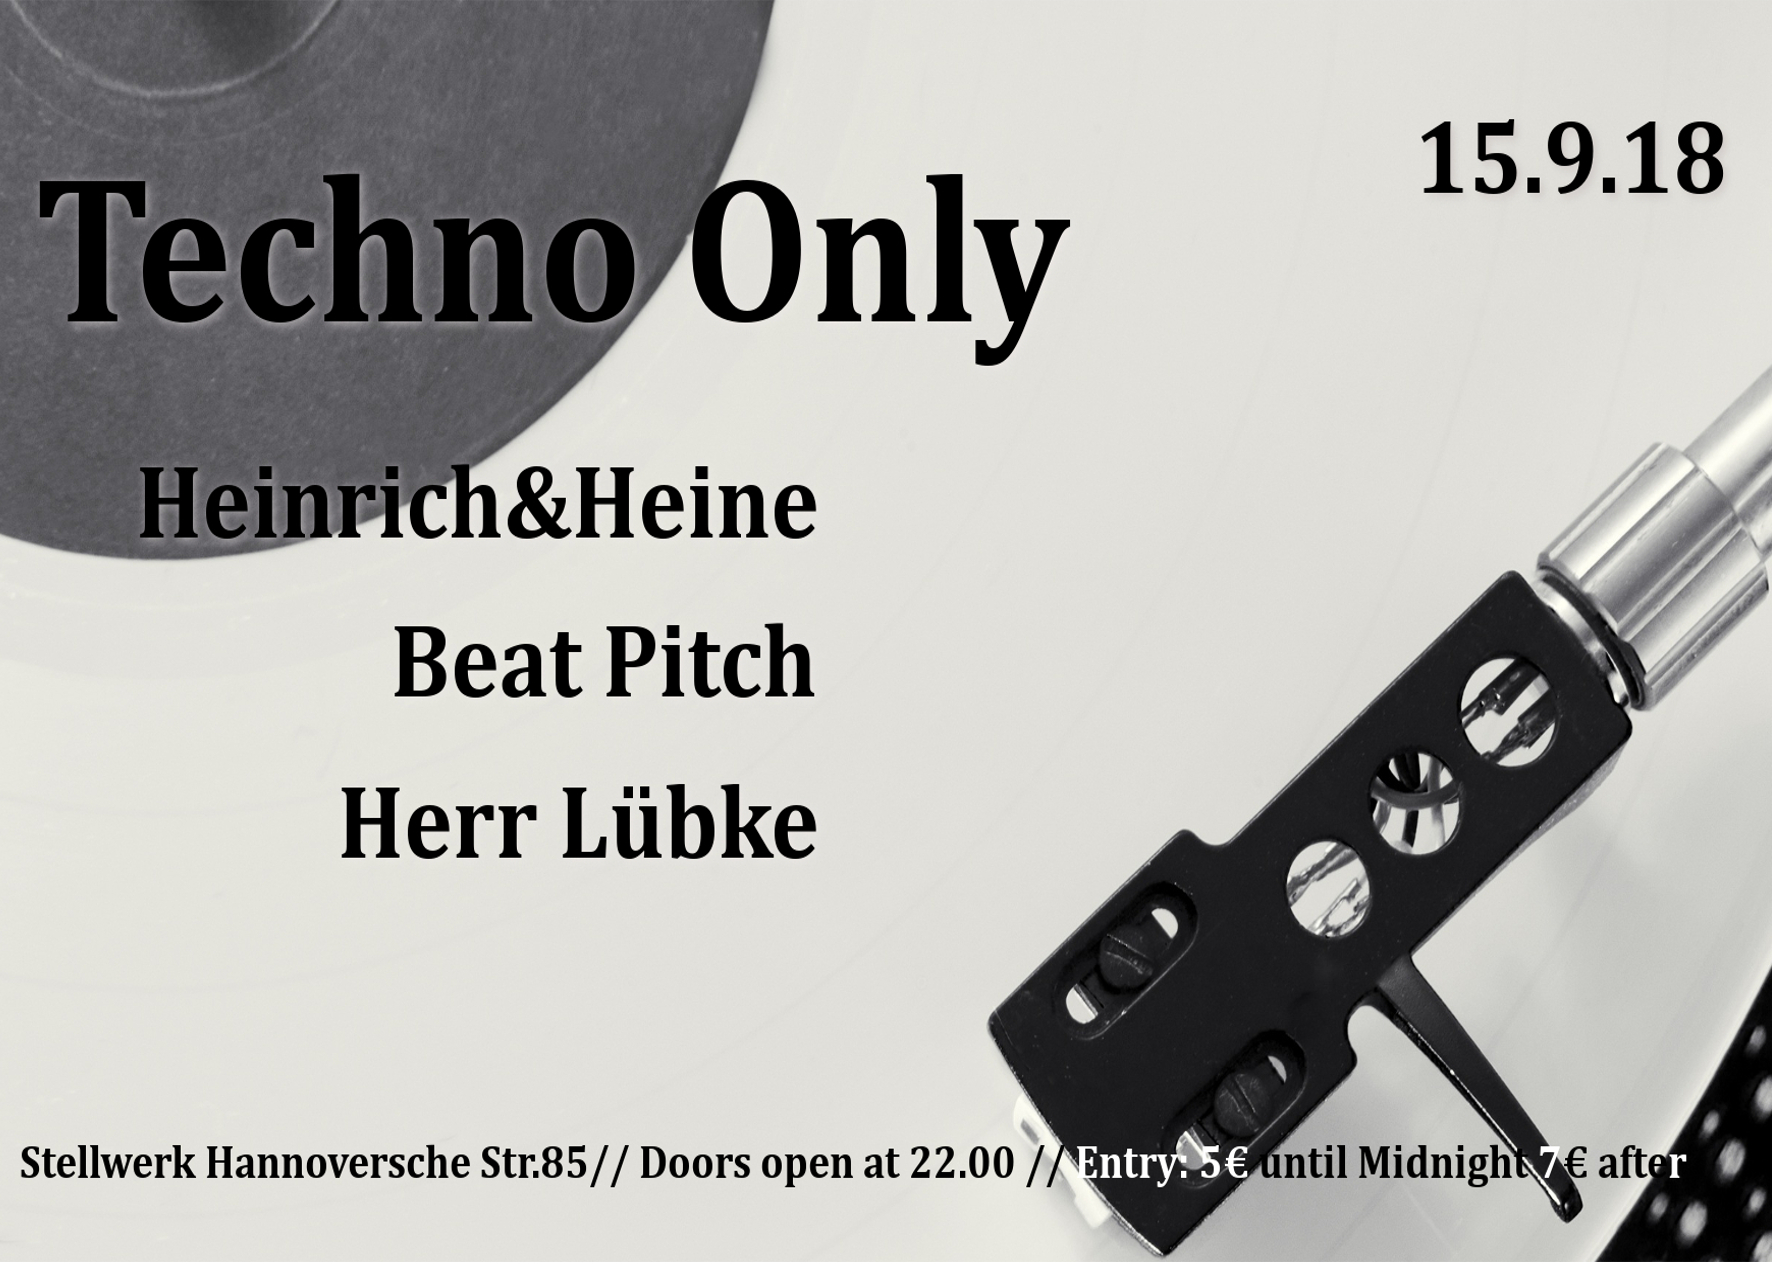 Techno Only